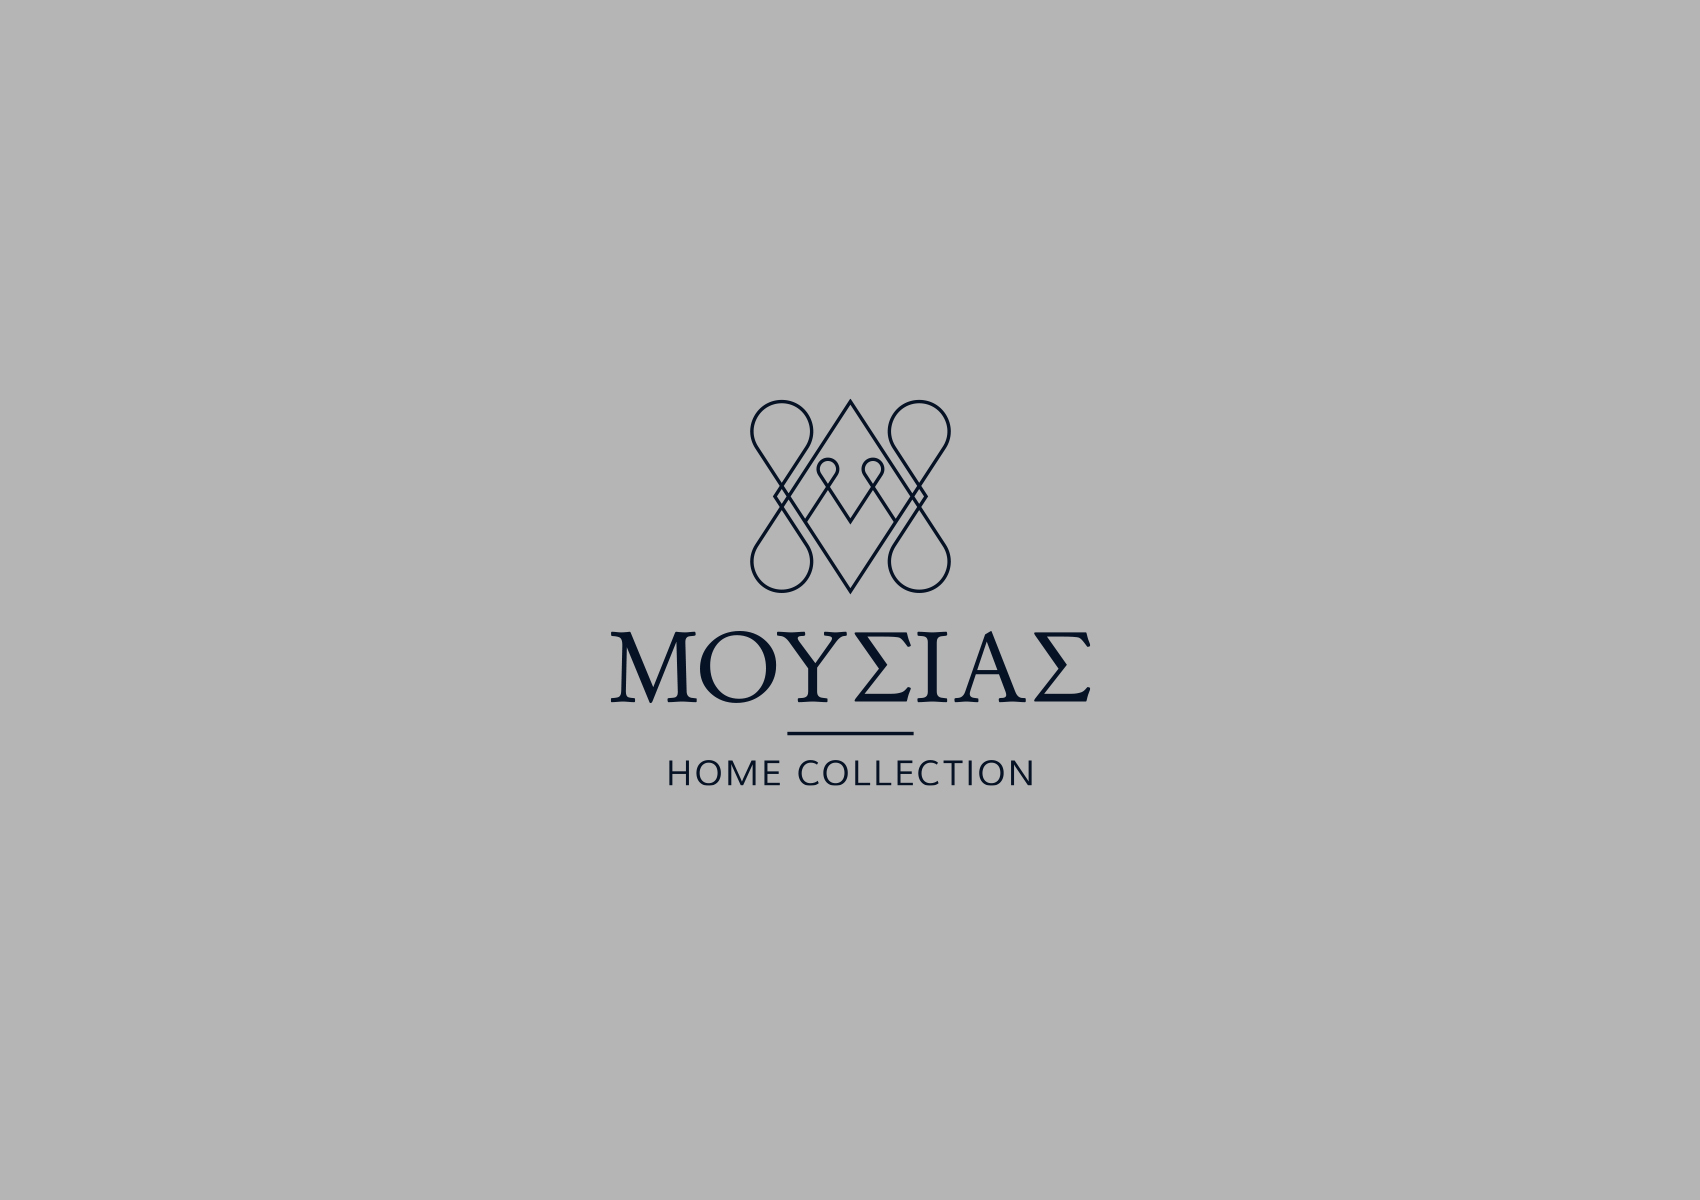 Moussias Home Collection grey logo 1700x1200 by xhristakis